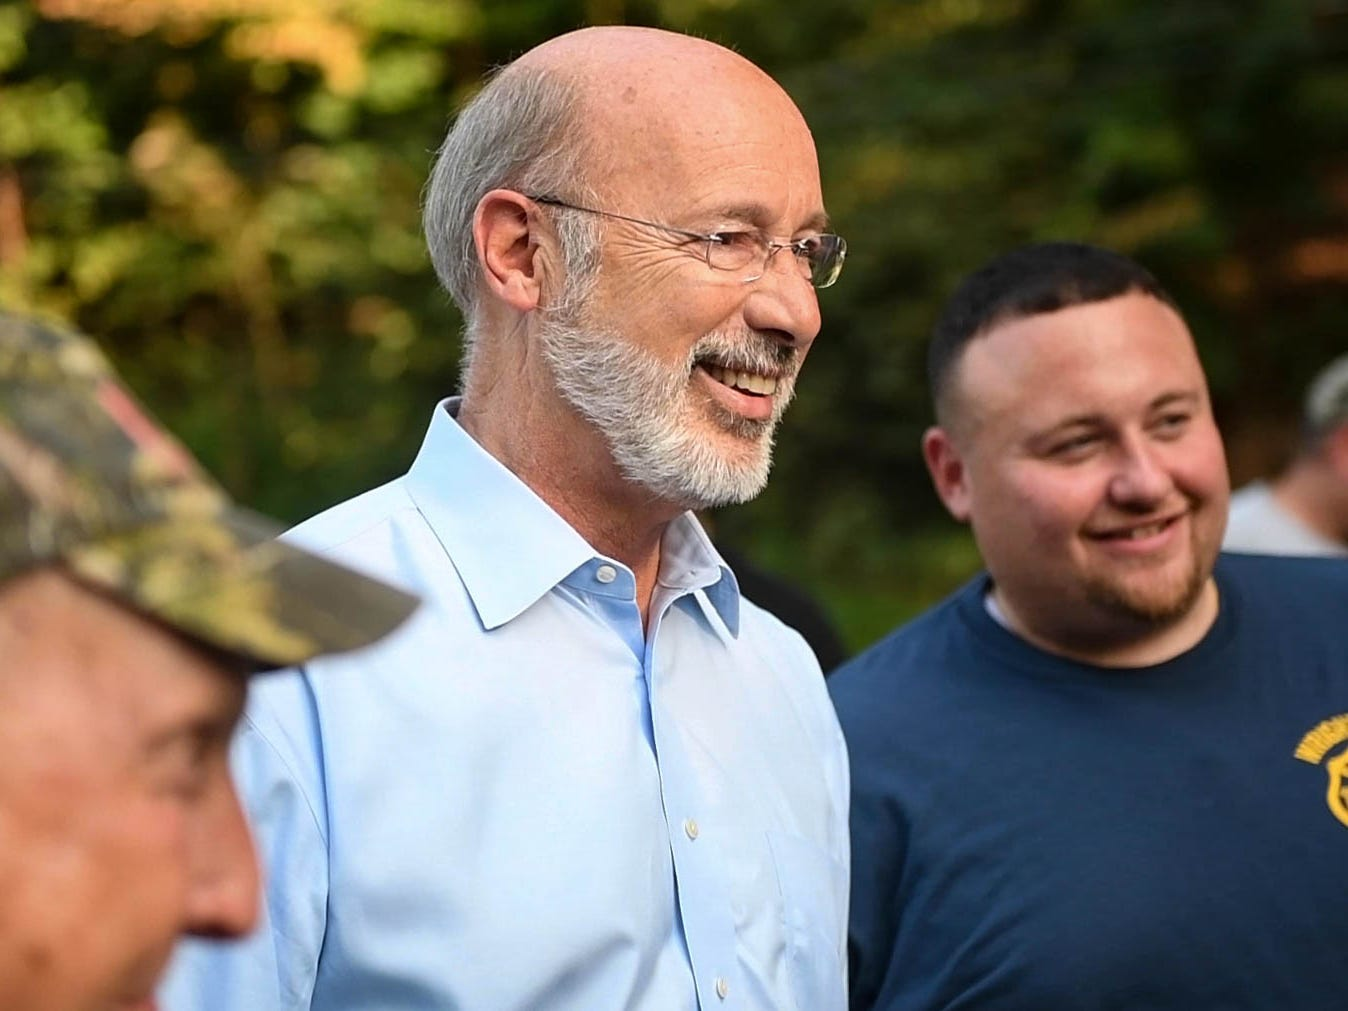 Gov. Wolf meets volunteers and homeowners affected by the flood upon arriving in Accomac, on Wednesday, September 5, 2018.